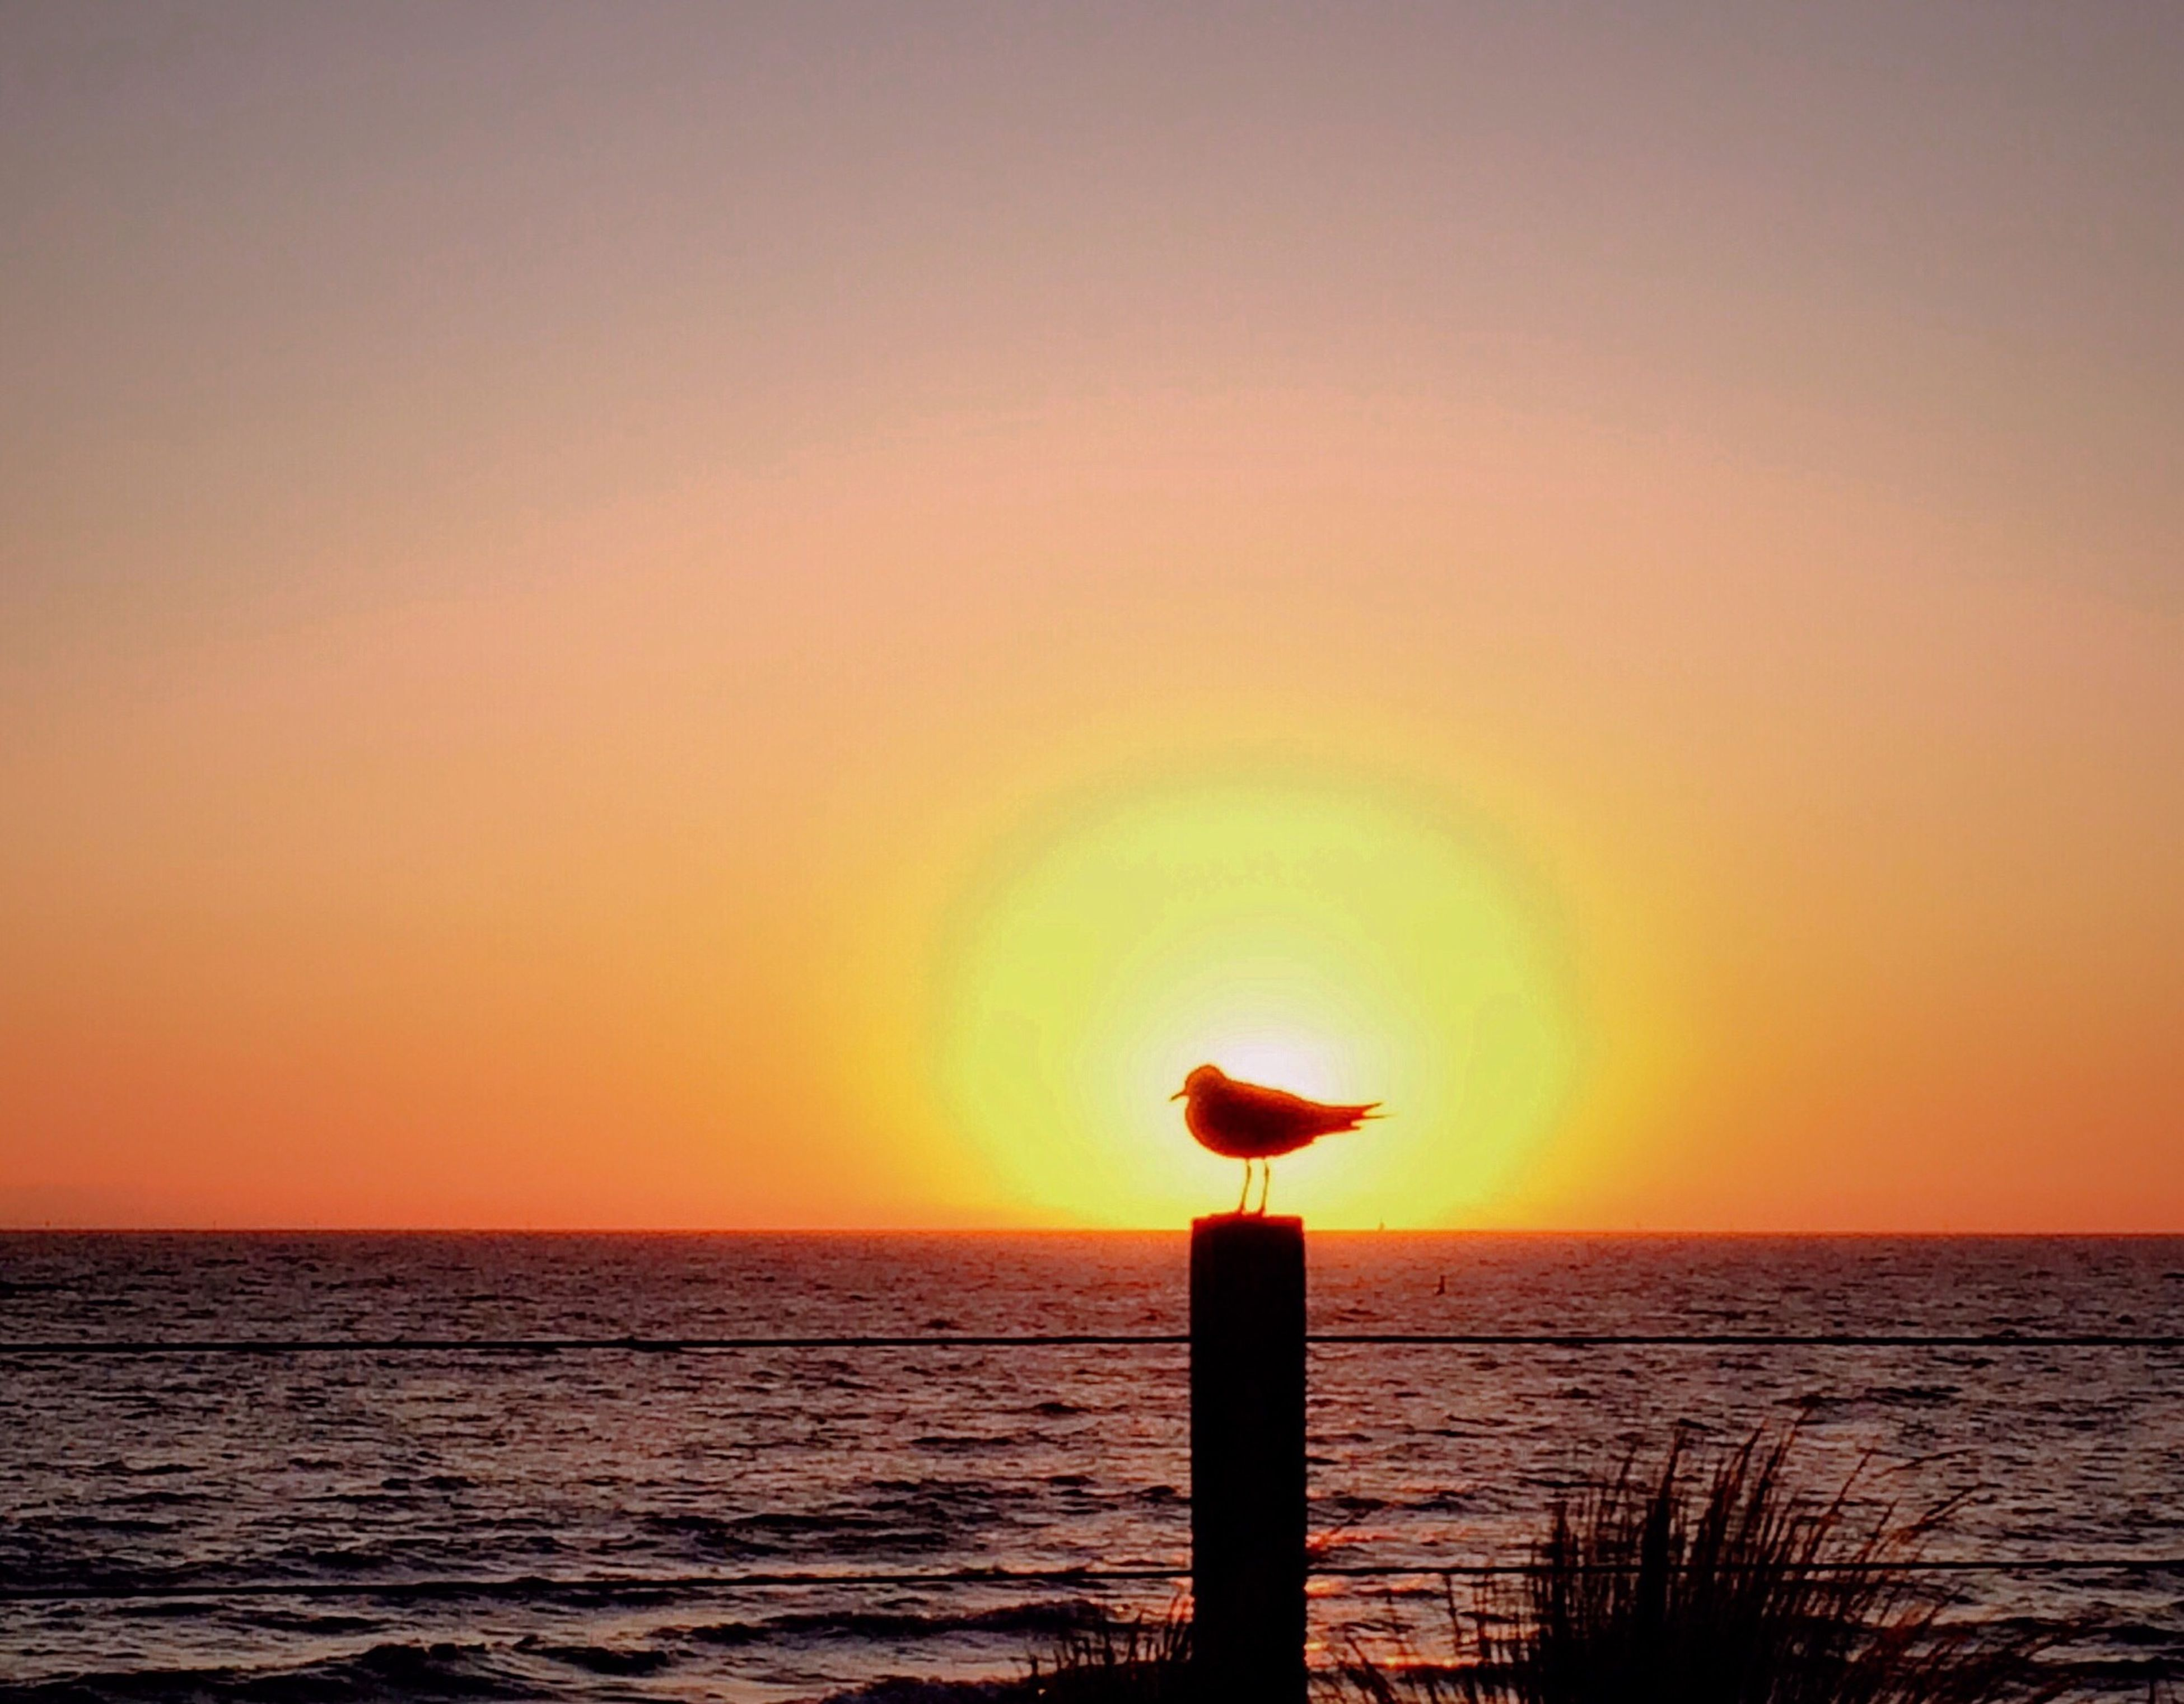 sunset, sea, water, horizon over water, sun, orange color, bird, one animal, animal themes, beauty in nature, scenics, animals in the wild, nature, tranquil scene, tranquility, clear sky, wildlife, copy space, waterfront, sky